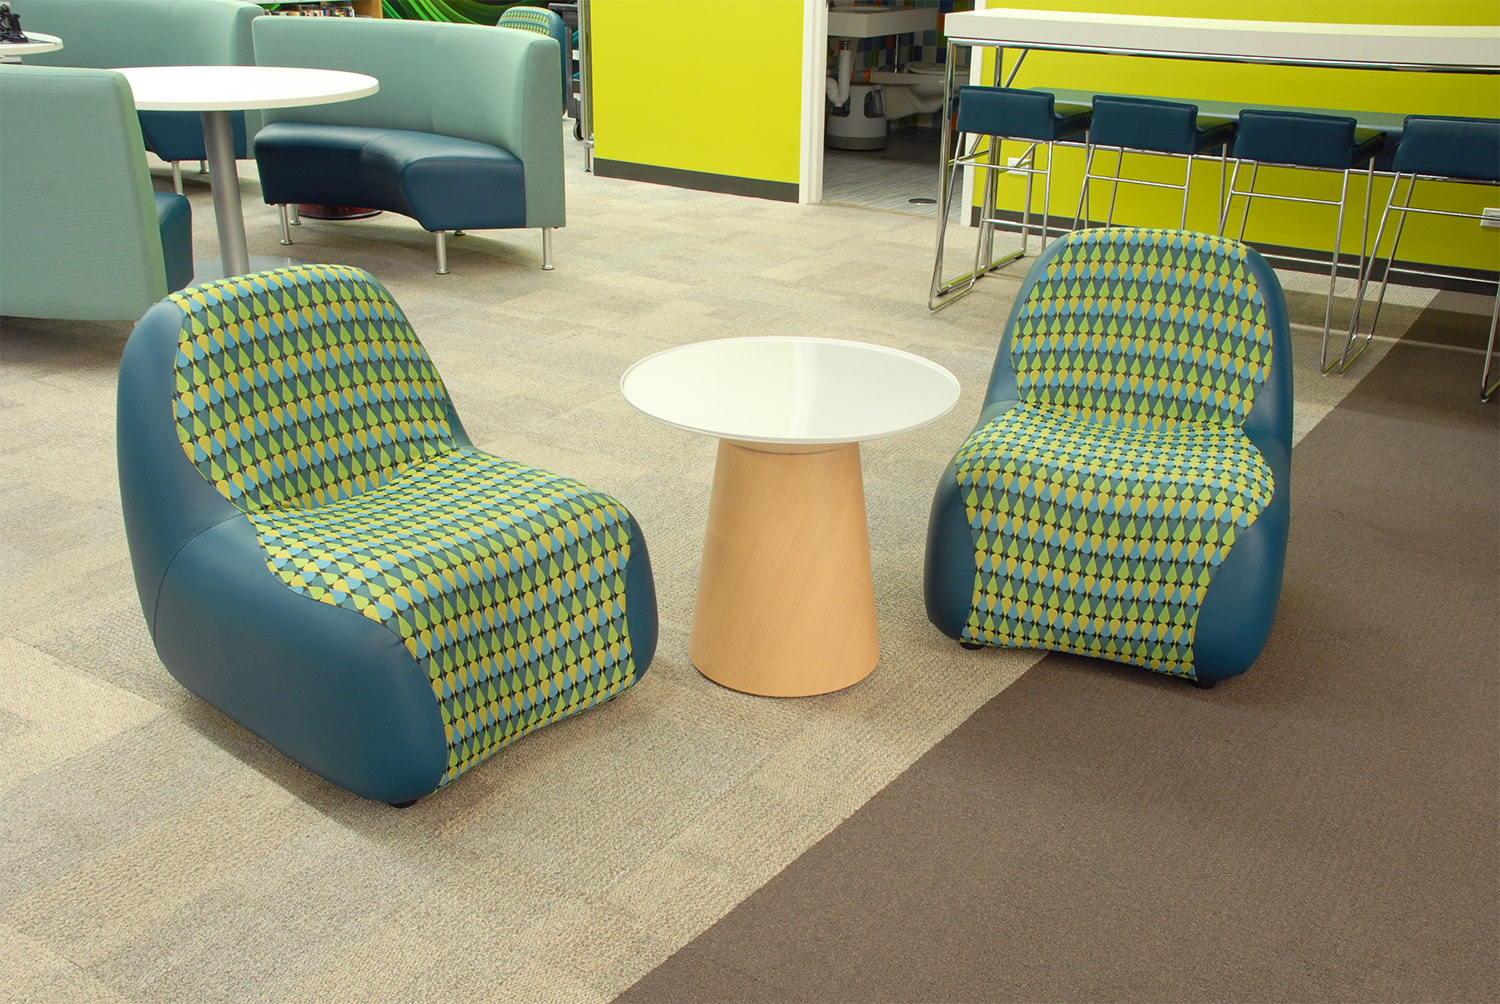 Blob chairs at Vernon Area Public Library